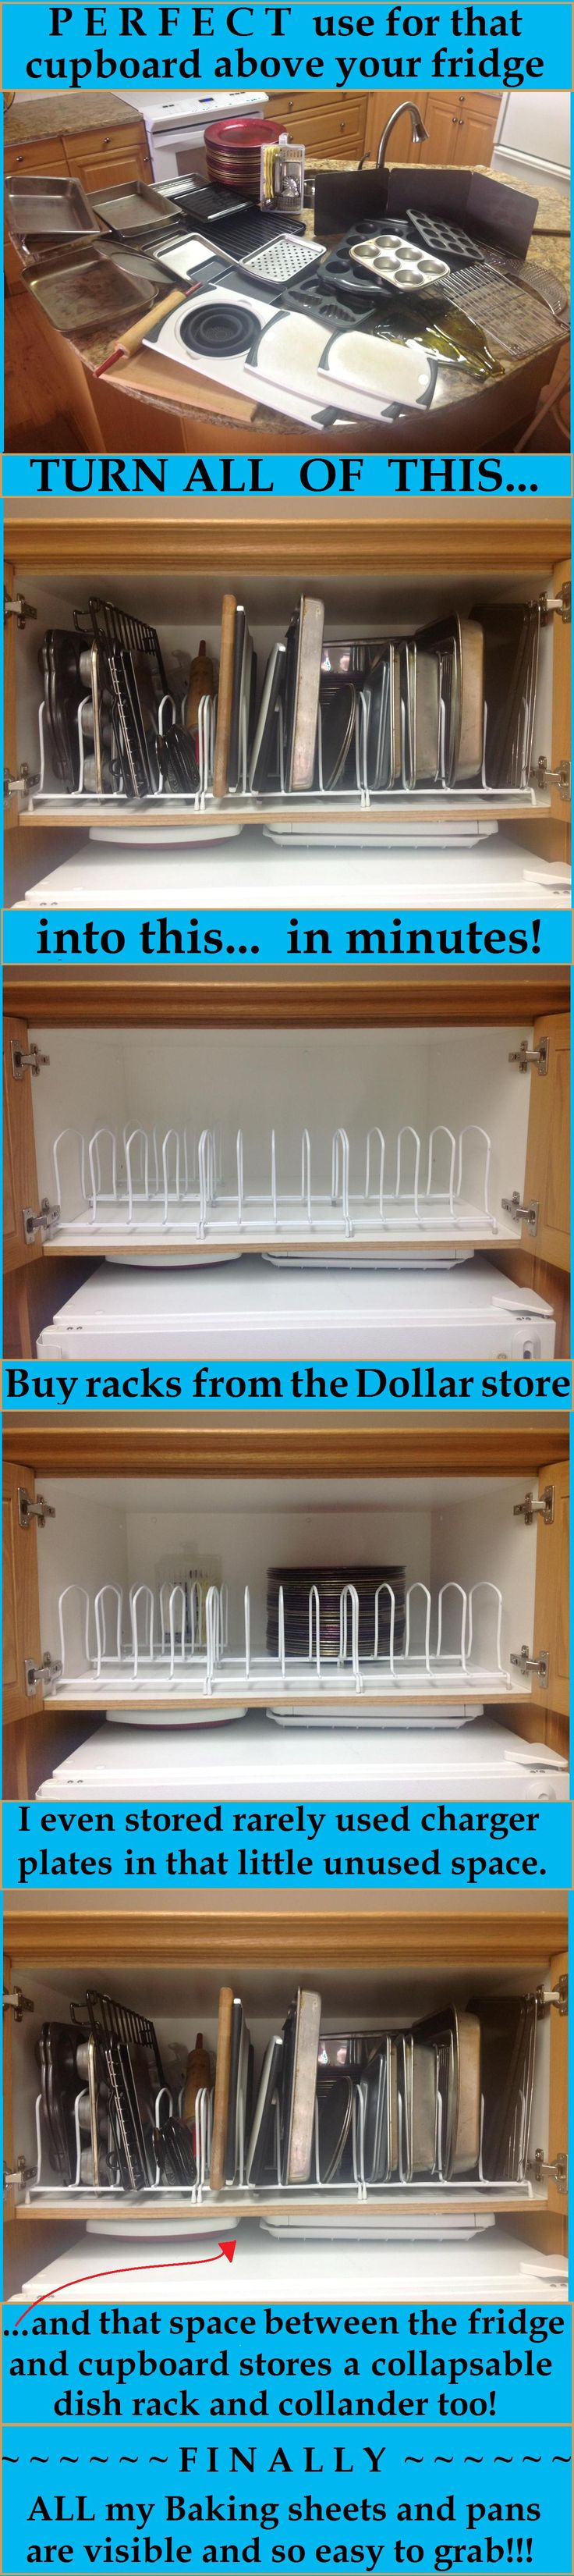 Dollar Store Dish Racks To Separate The Pans And Lids In A Cabinet Above  The Fridge · Kitchen OrganisationOrganized KitchenOrganization ... Part 61